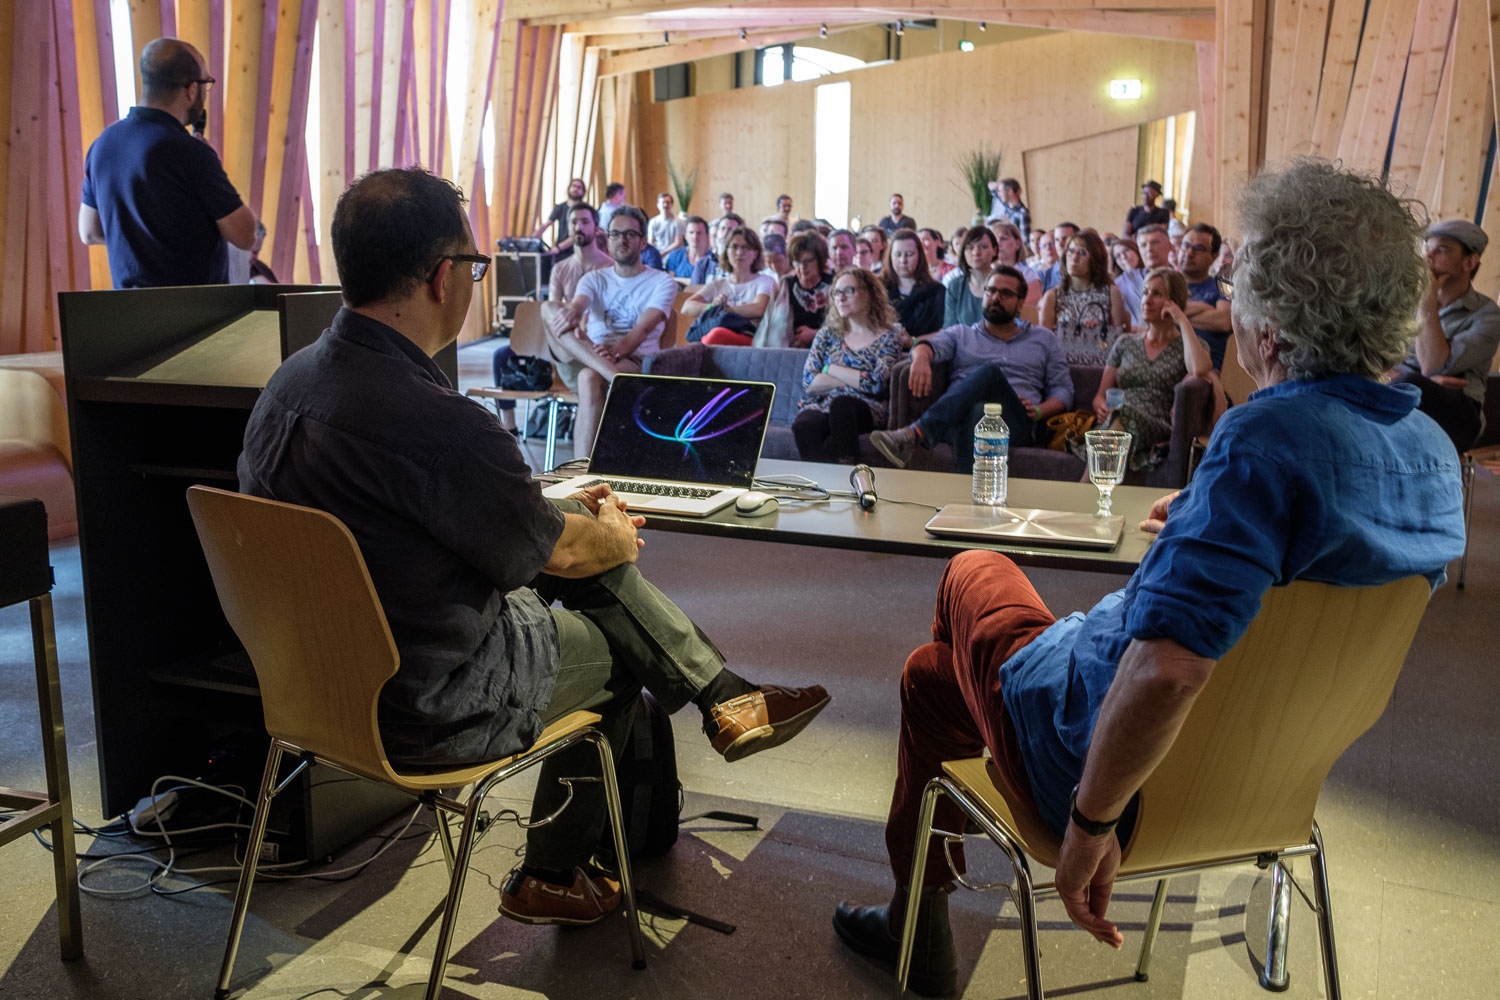 Luxembourg Street Photography Festival at Rotondes - Conference with Harry Gruyaert - LSPF 2018 - Photography by Christophe Van Biesen - Luxembourg Landscape and Travel Photographer